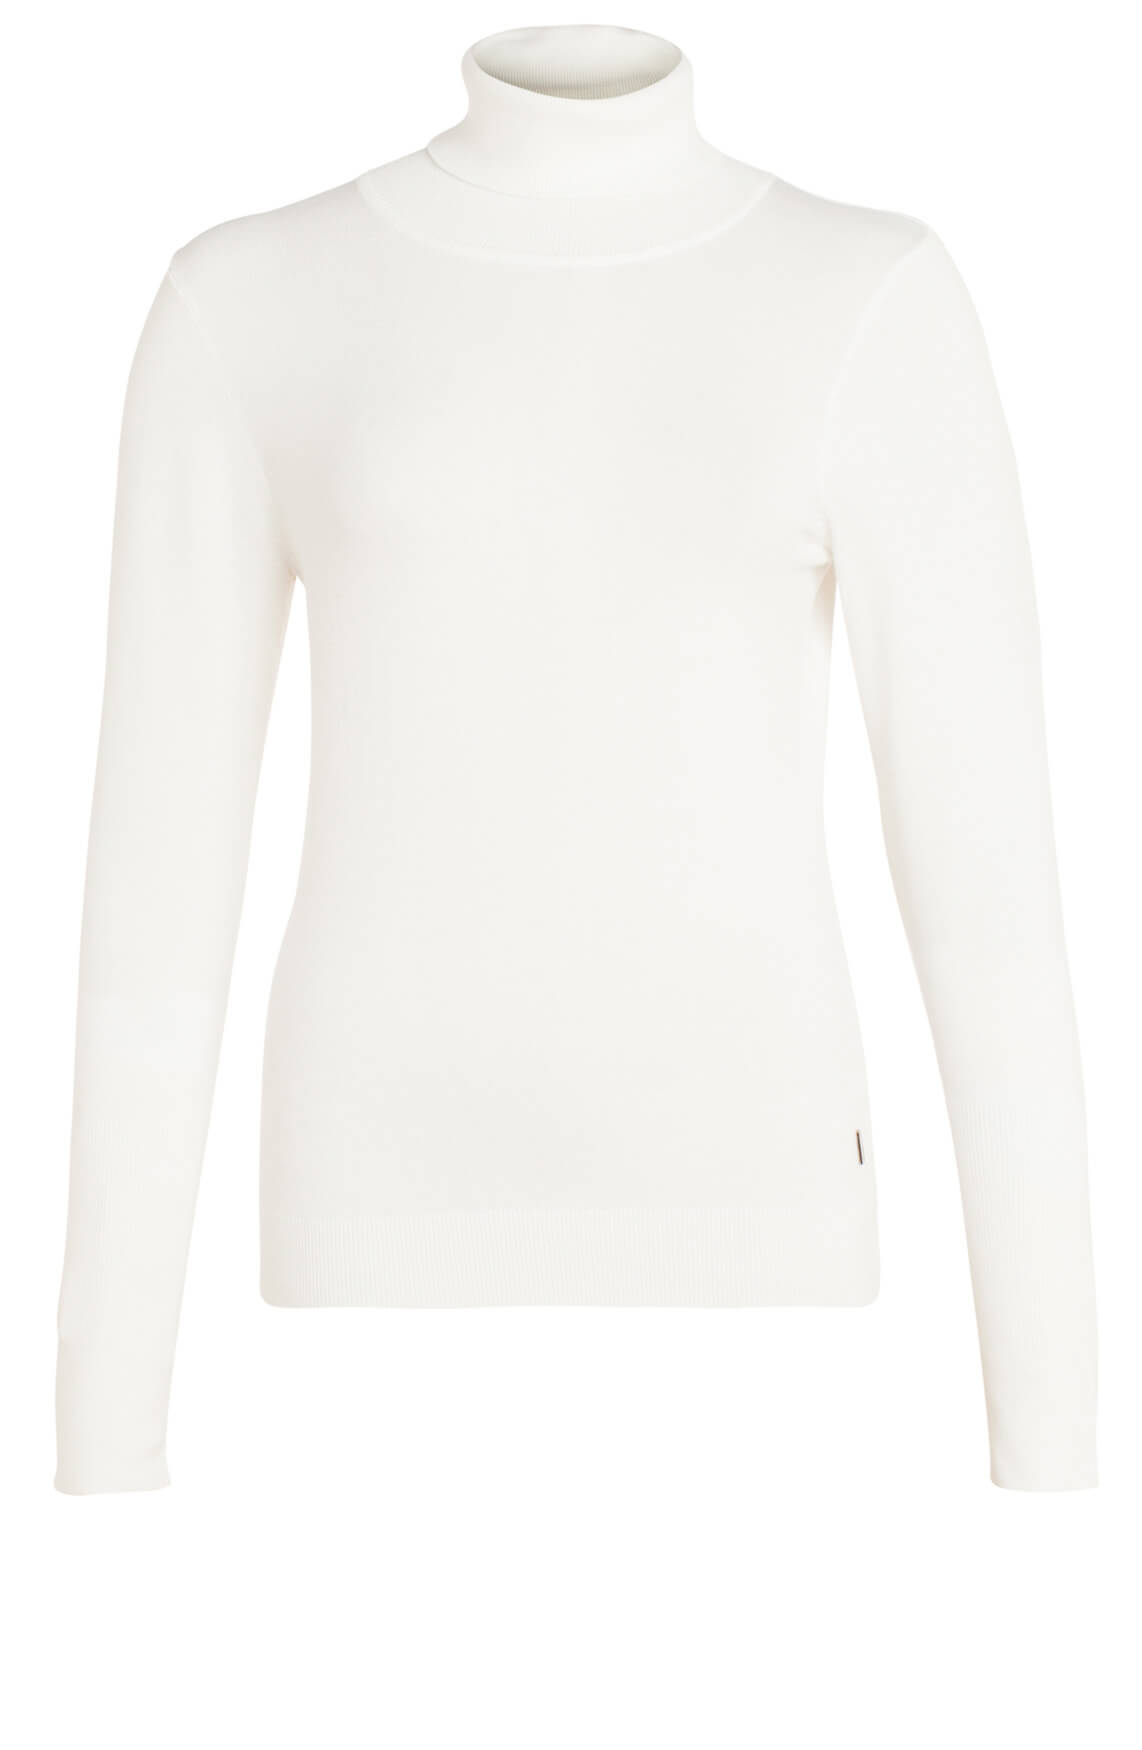 Anna Dames Pullover met col wit